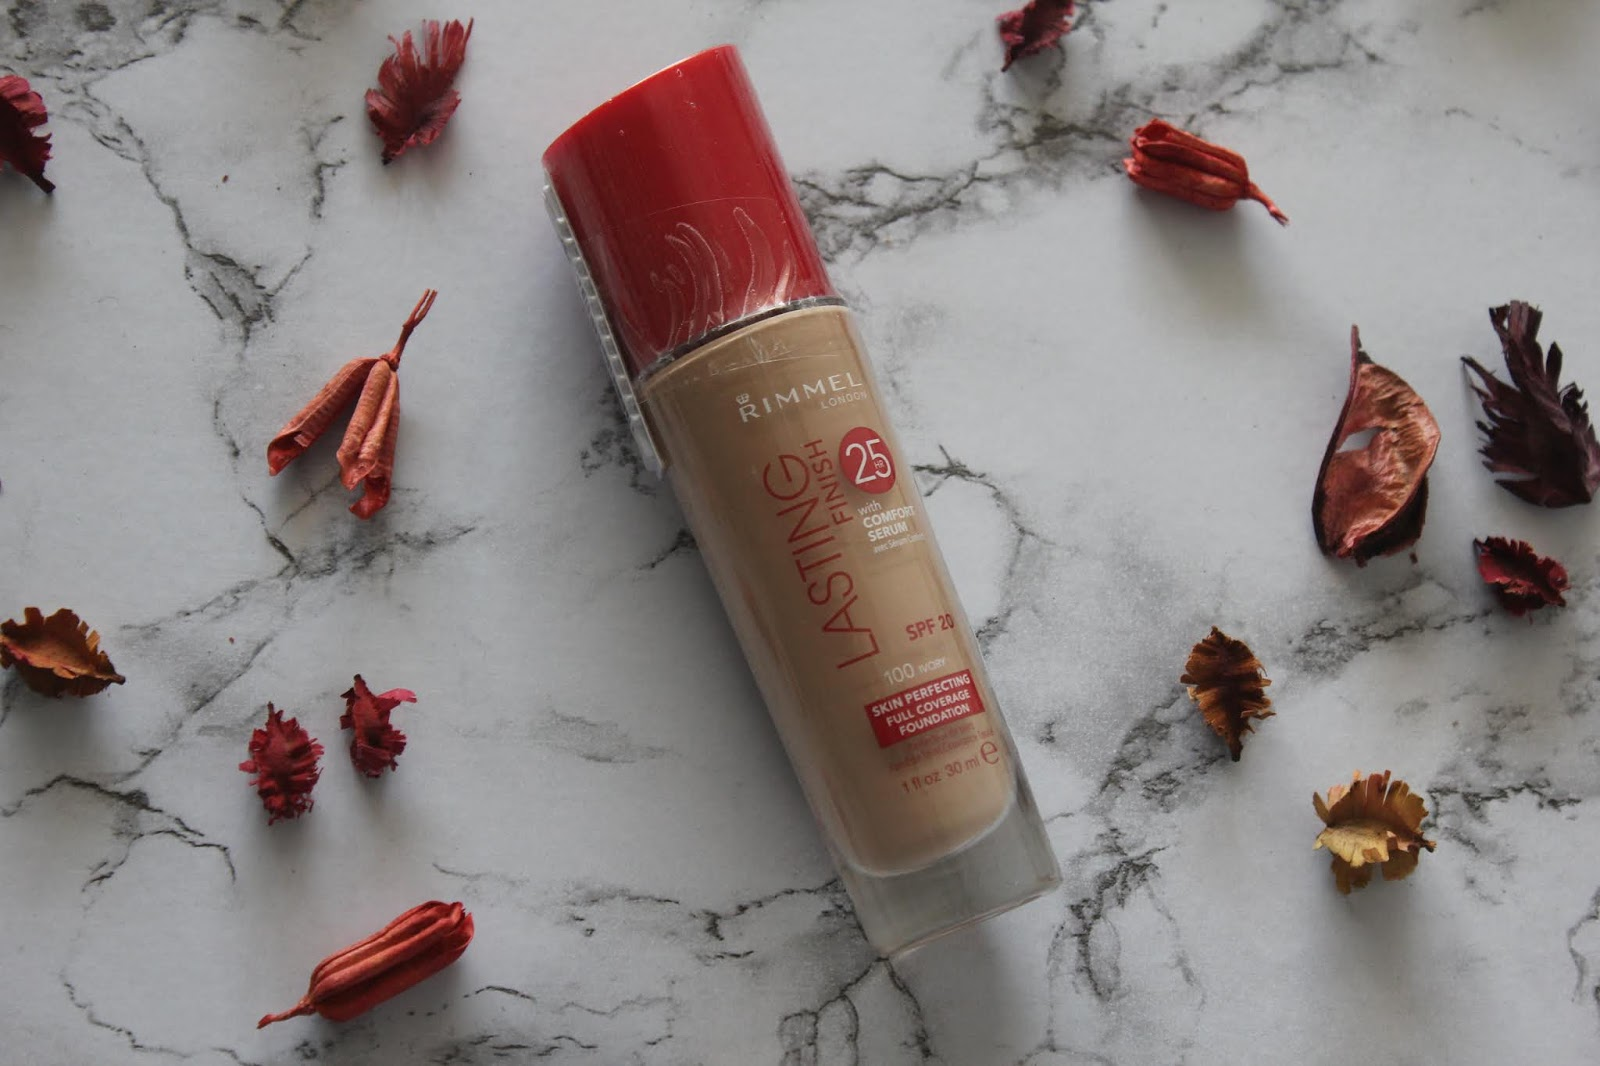 Rimmel Lasting Finish 25Hr Foundation (Ivory)